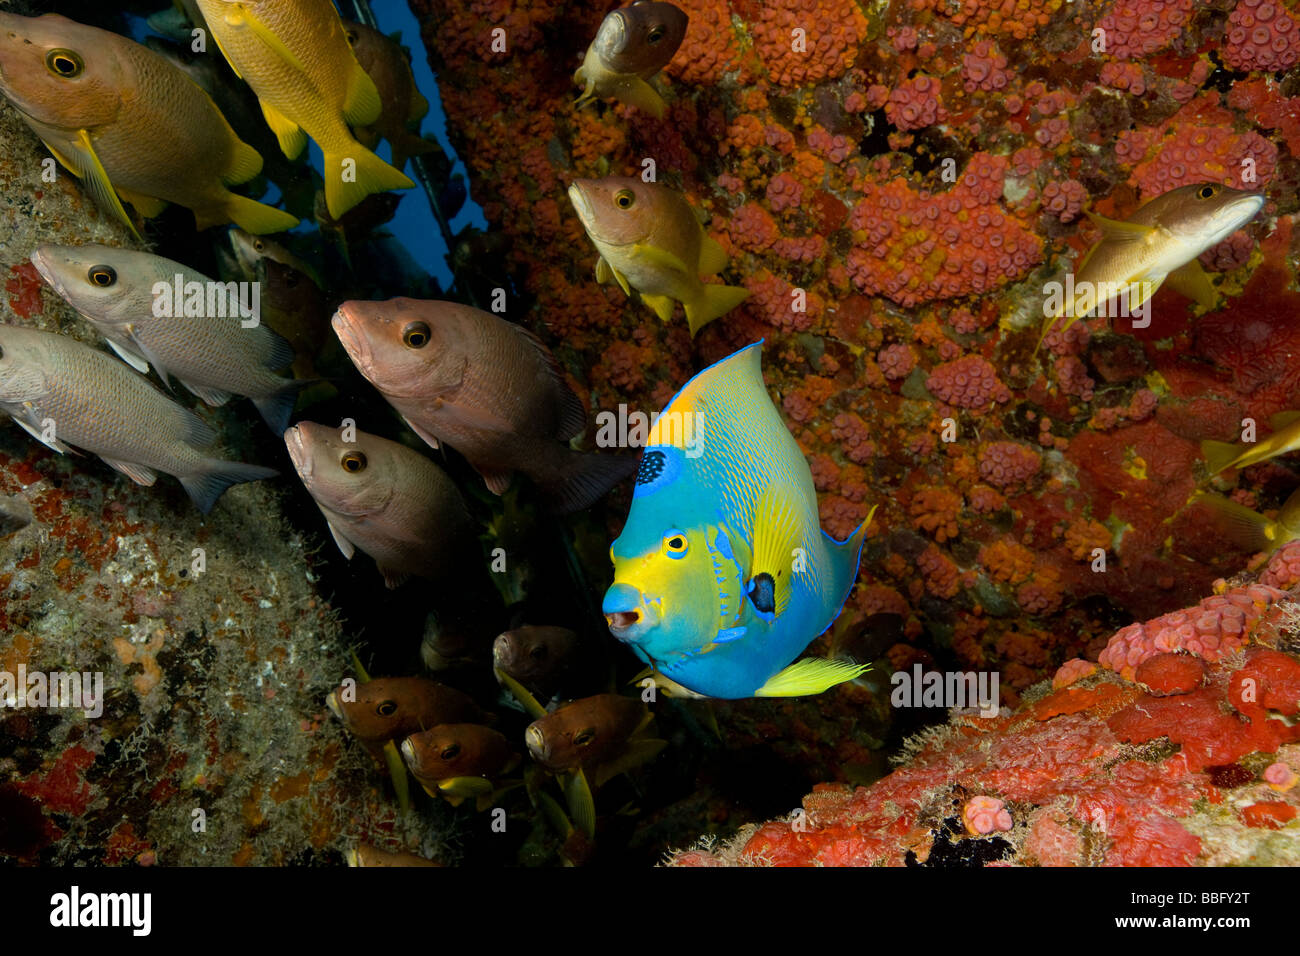 Structure attracts marine life. - Stock Image